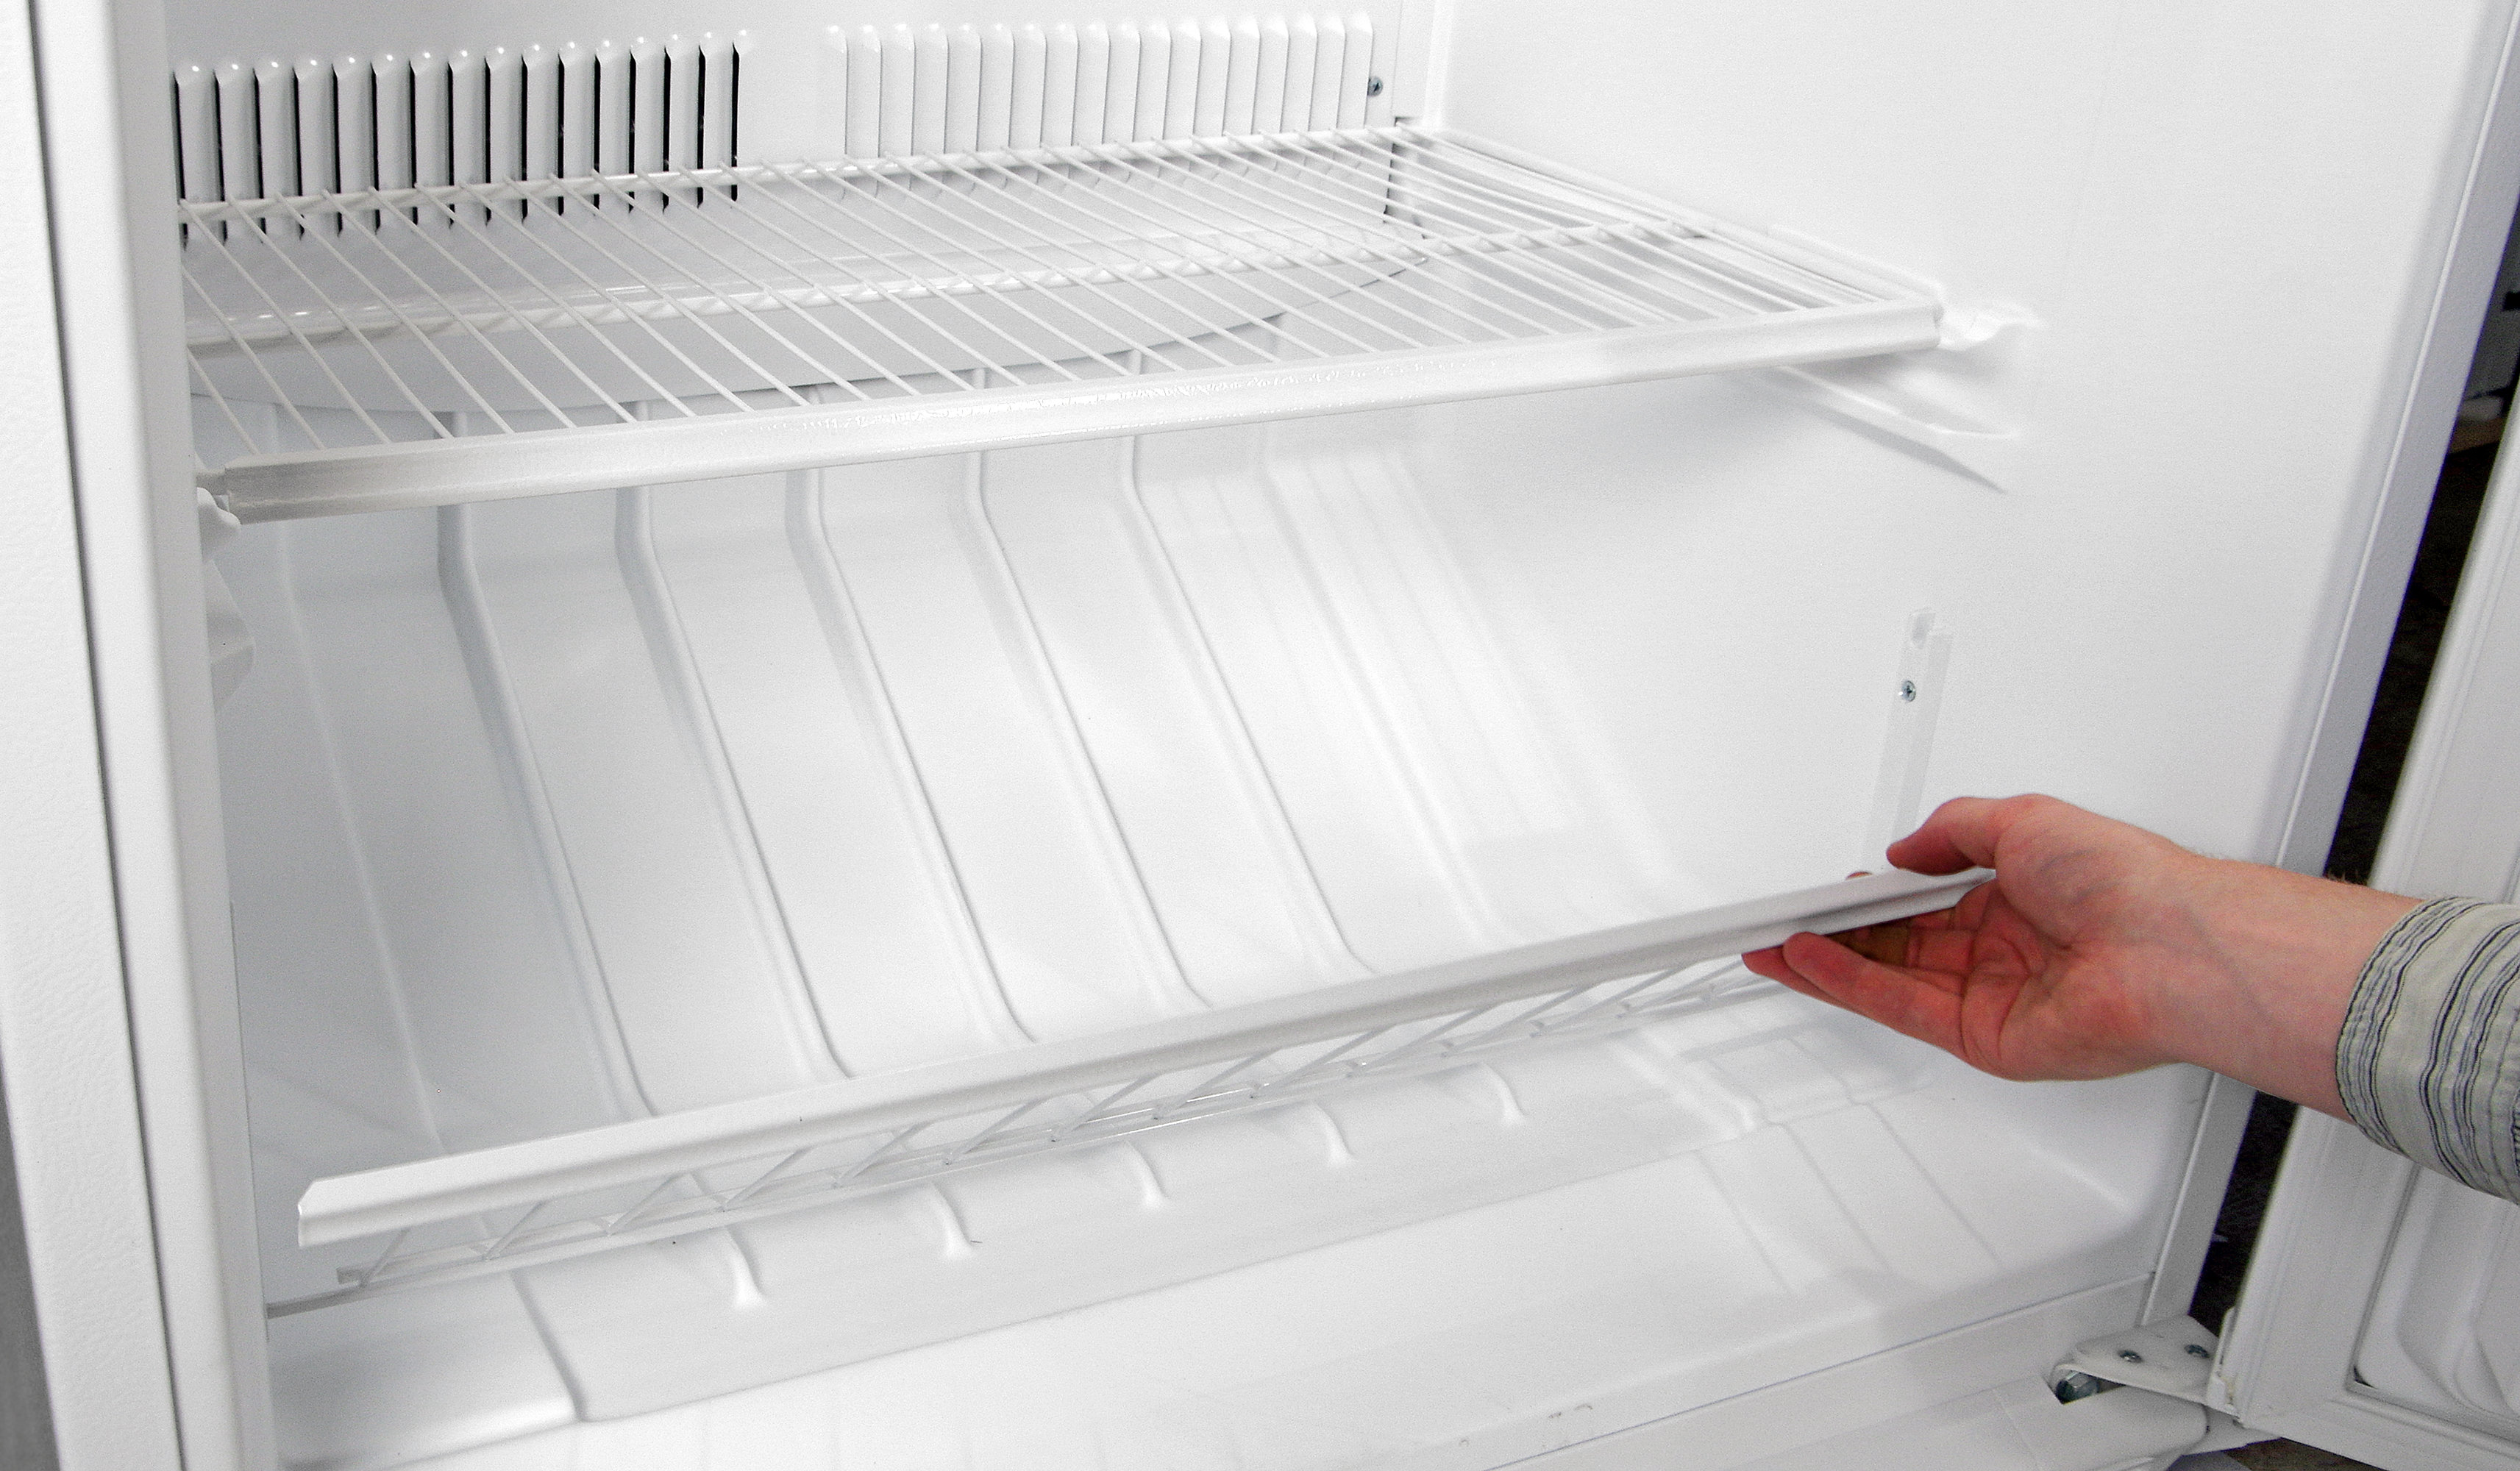 The Whirlpool EV160NZTQ's lower compartment is built into the bottom of the freezer with a gate-like barrier to keep the food in.